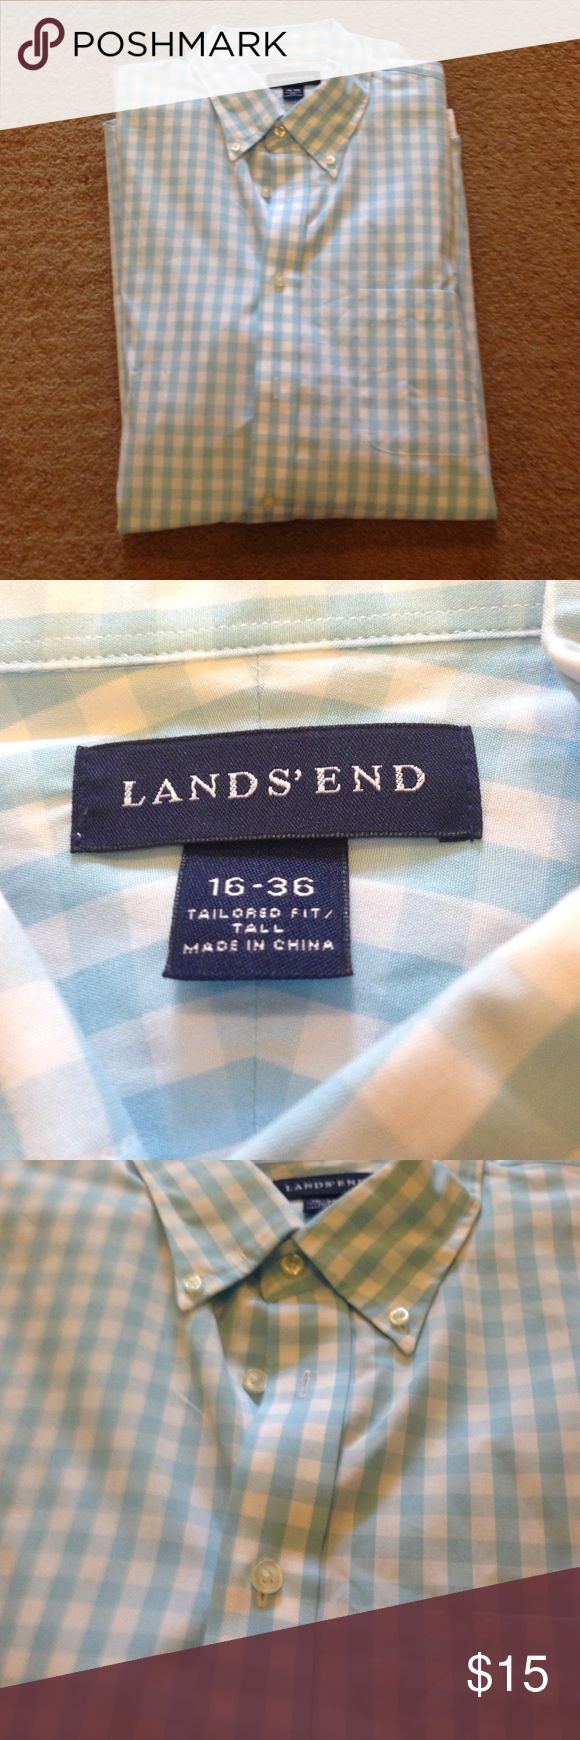 Light blue gingham shirt Excellent condition! Never worn Lands' End Shirts Casual Button Down Shirts